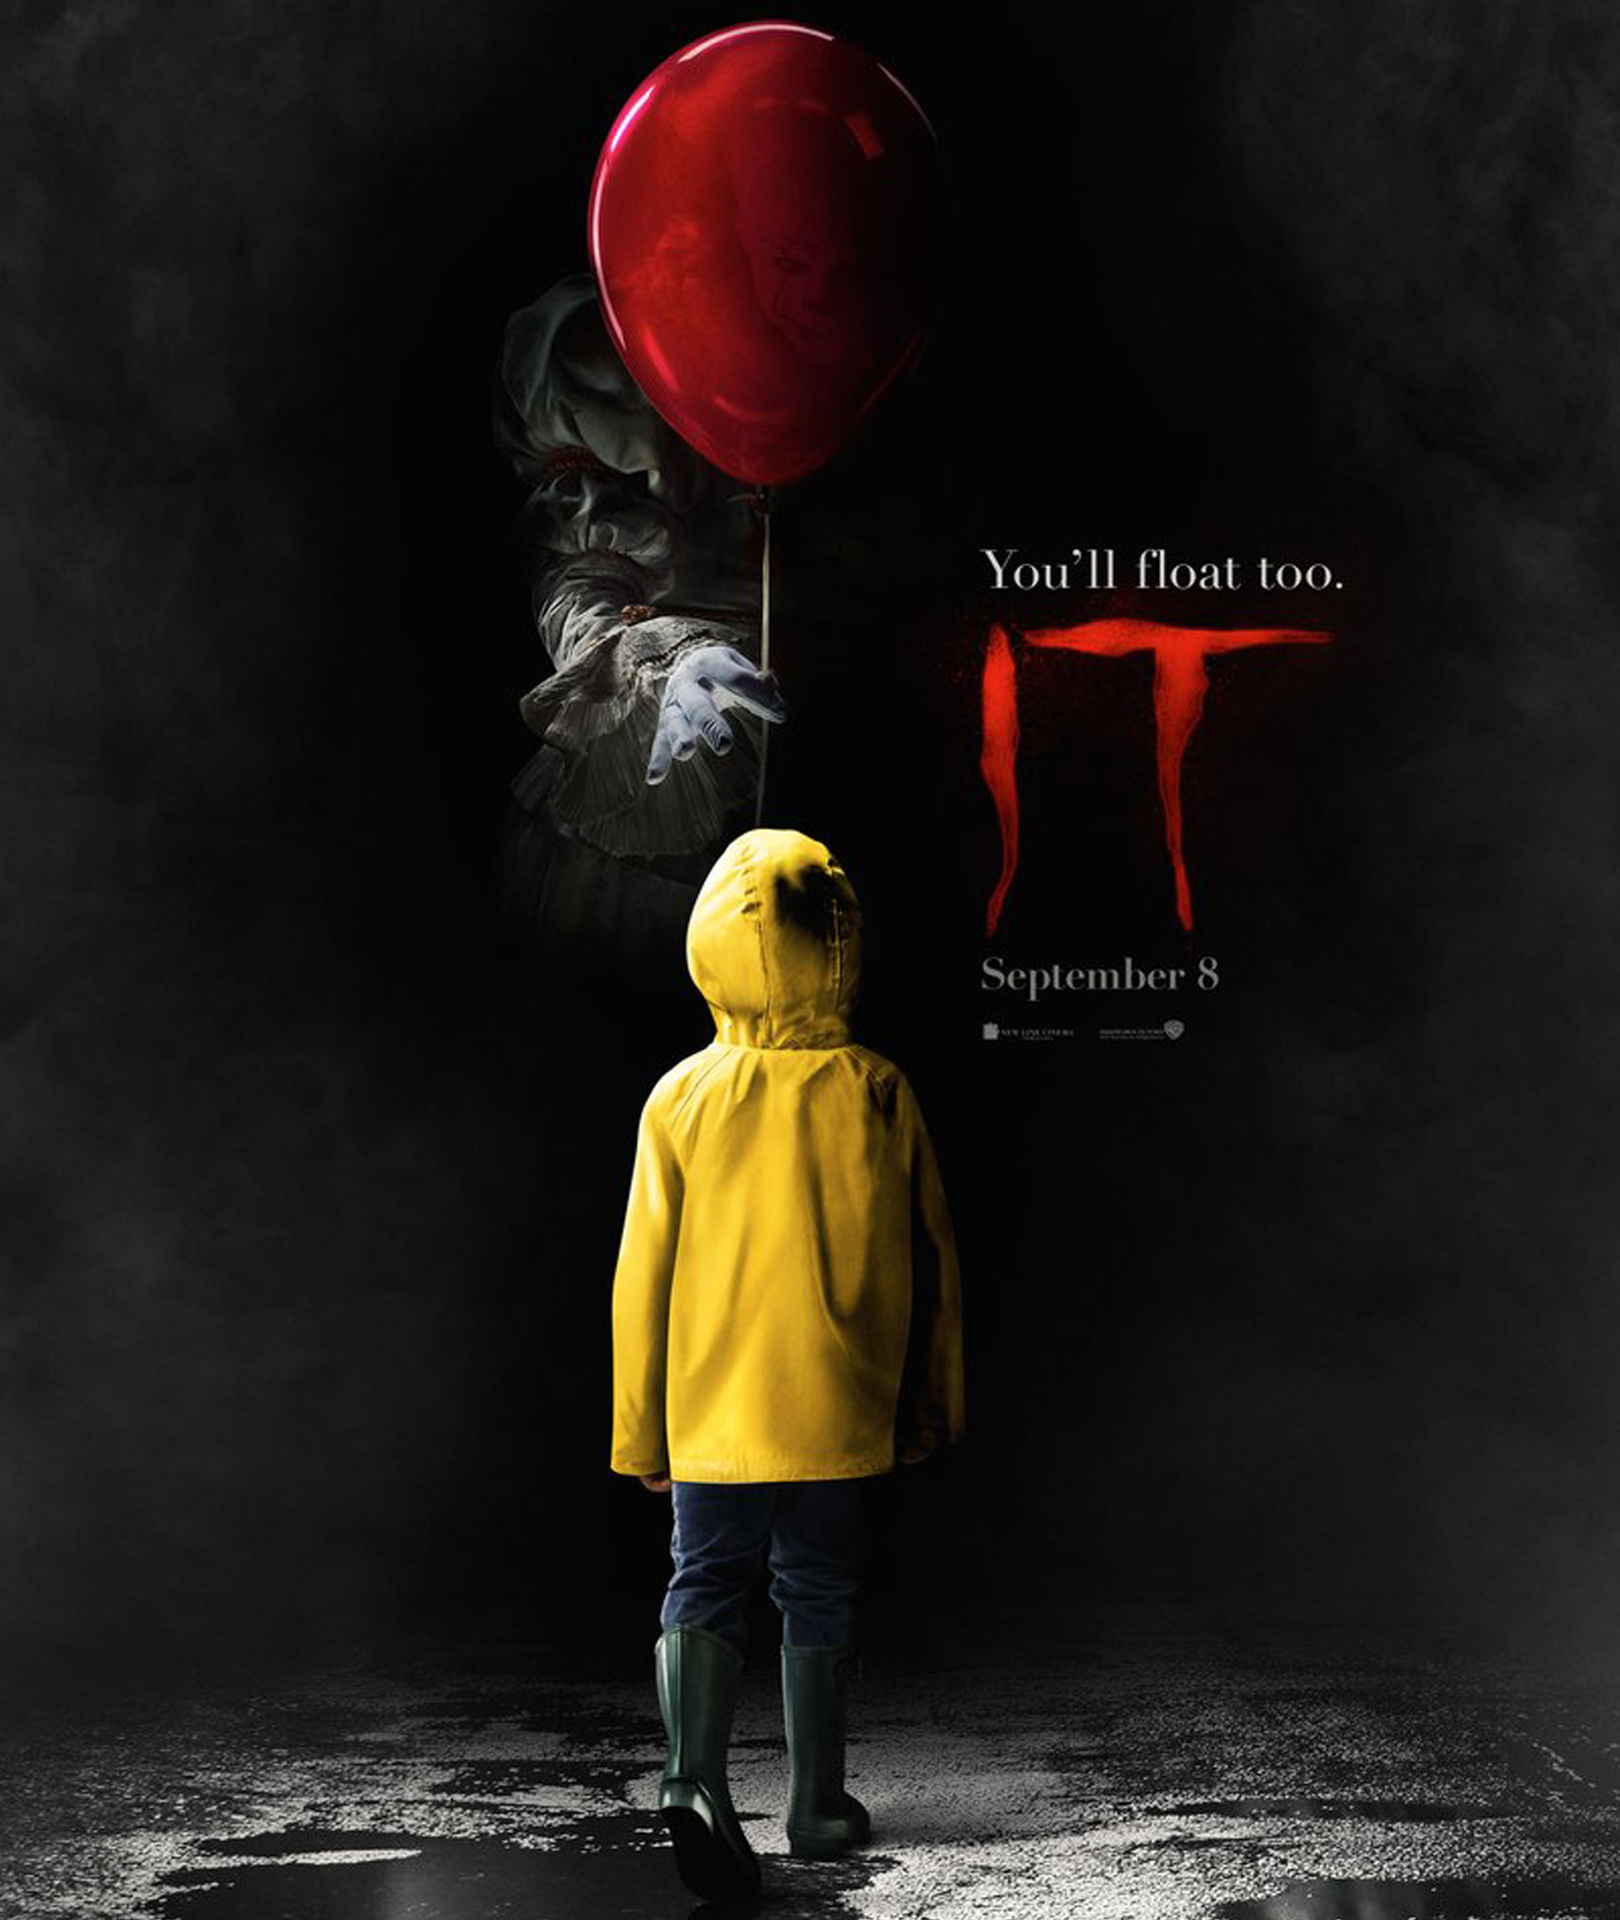 IT film review: Pennywise lives